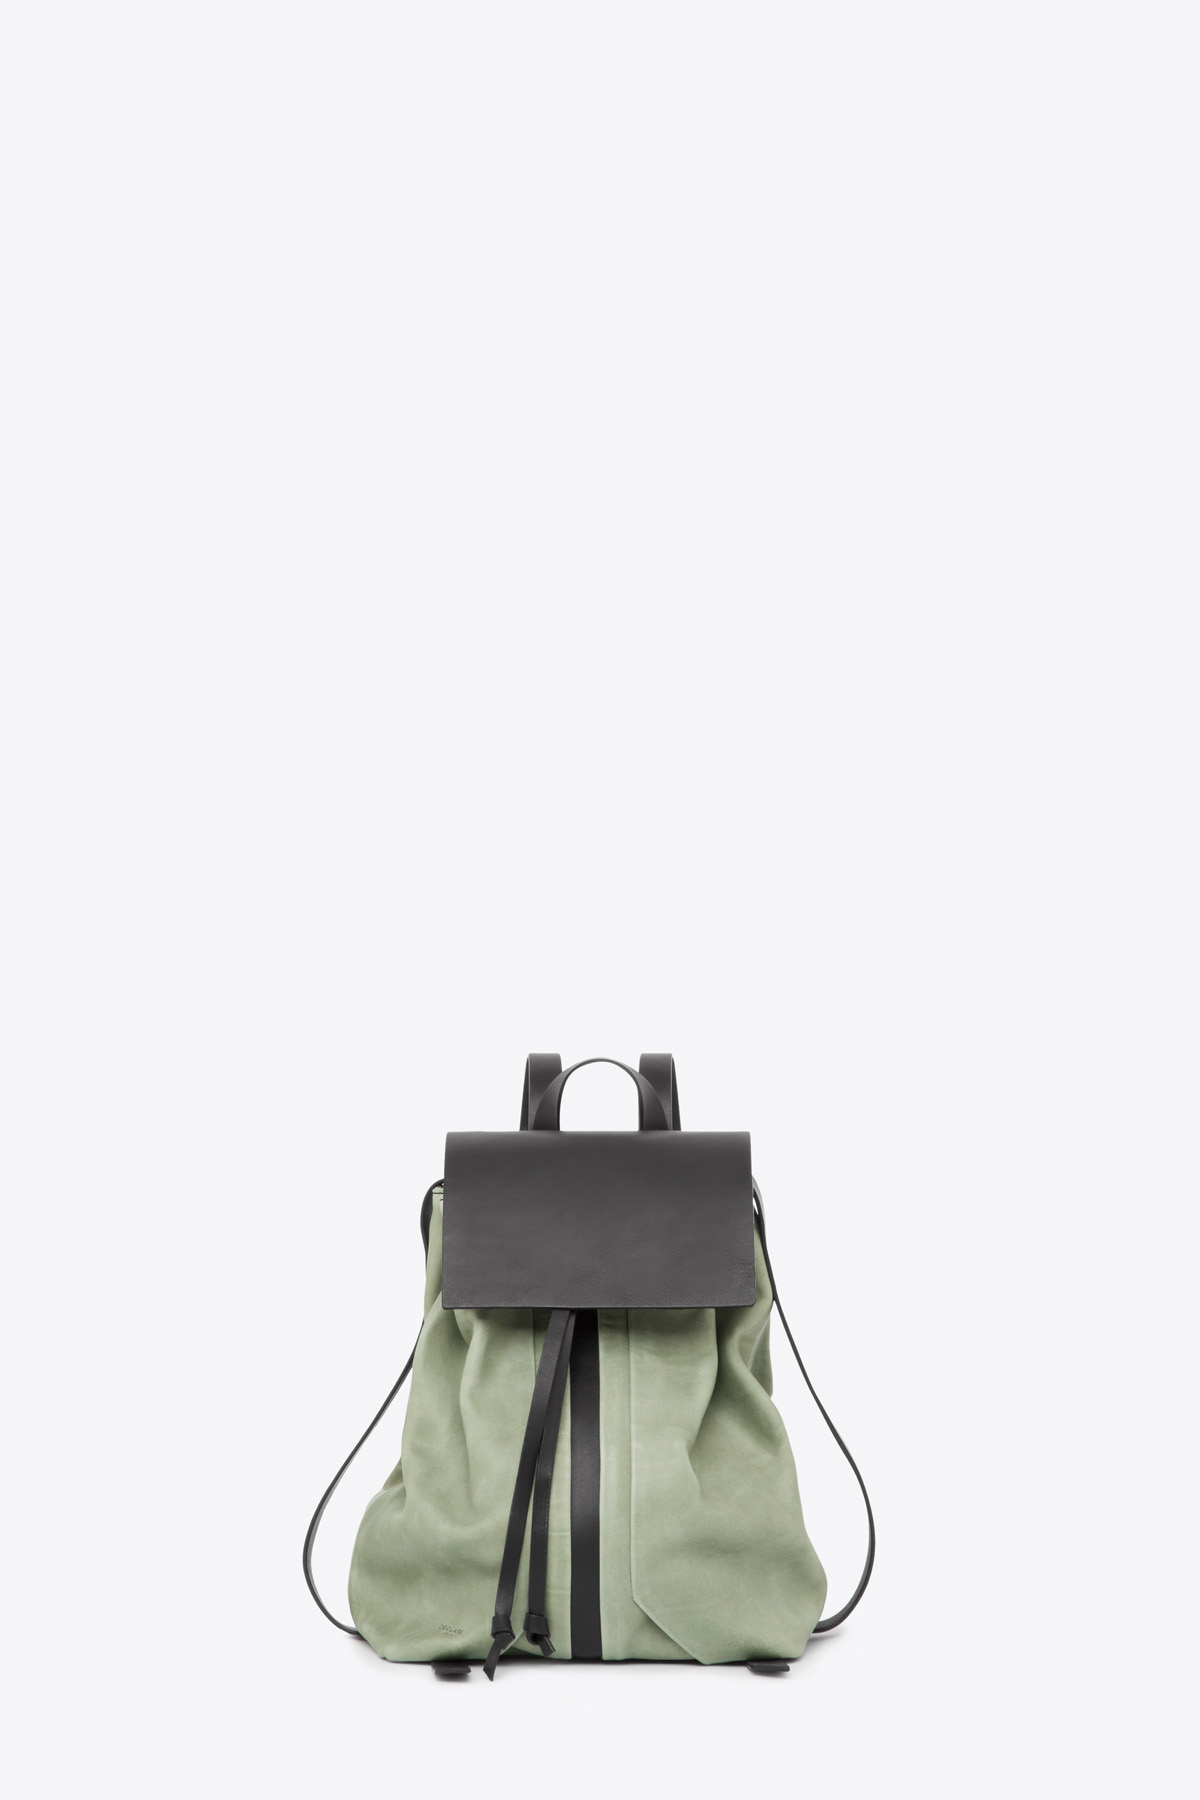 dclr009-b-backpack-a9-jadegreen-front